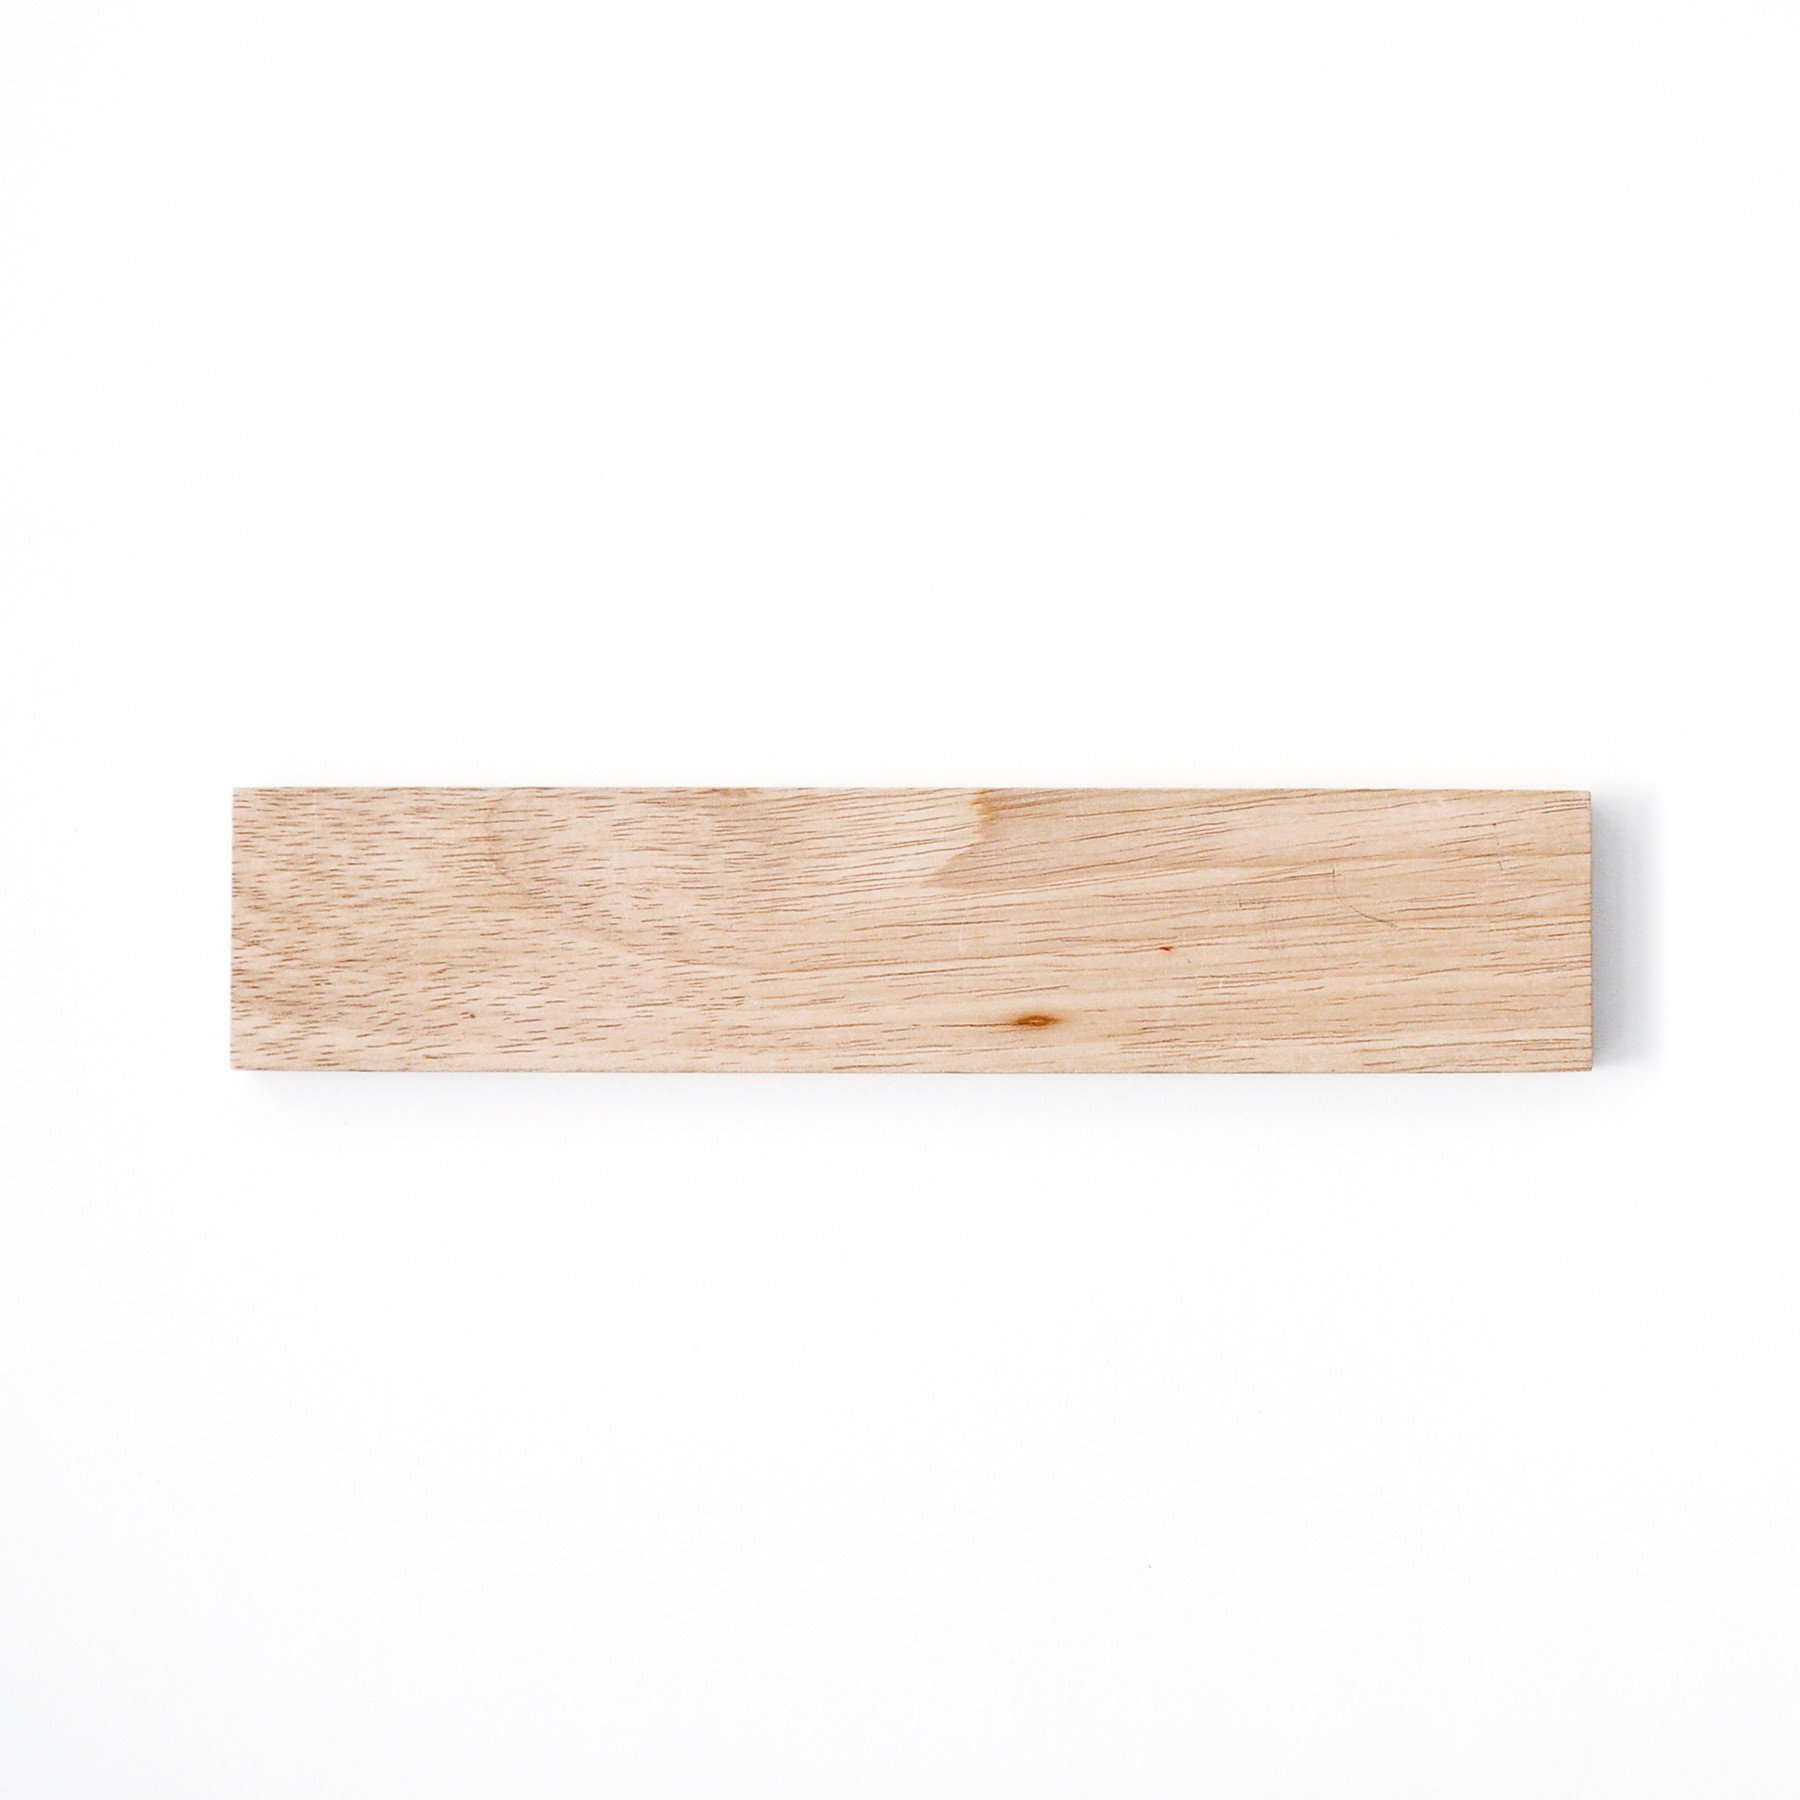 Everboards Bar Accessories - Wooden Magnetic Organizer - Inspiring Living Room Decorating Ideas - New Convenient Pegboard